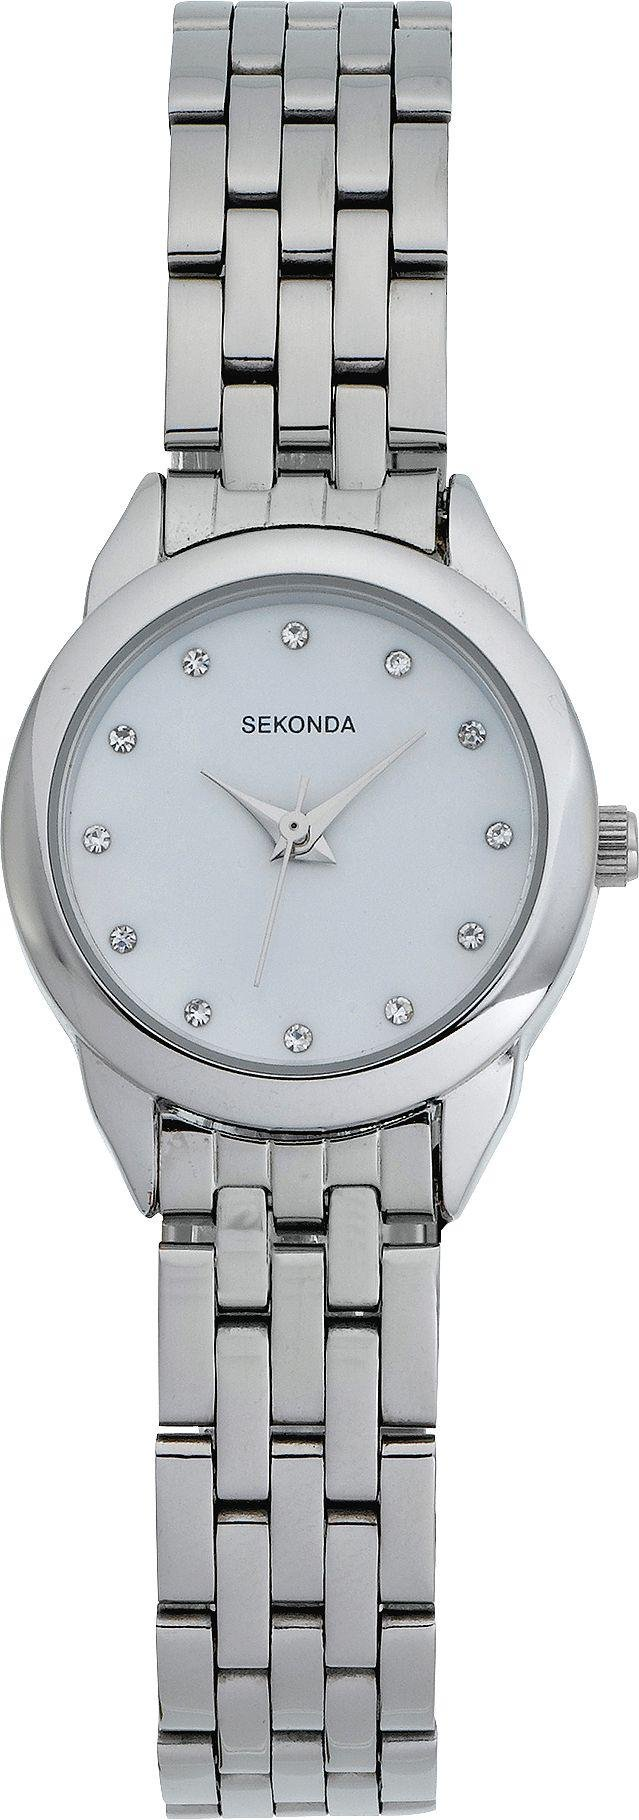 Buy Sekonda La s Stone Set Bracelet Watch at Argos Your